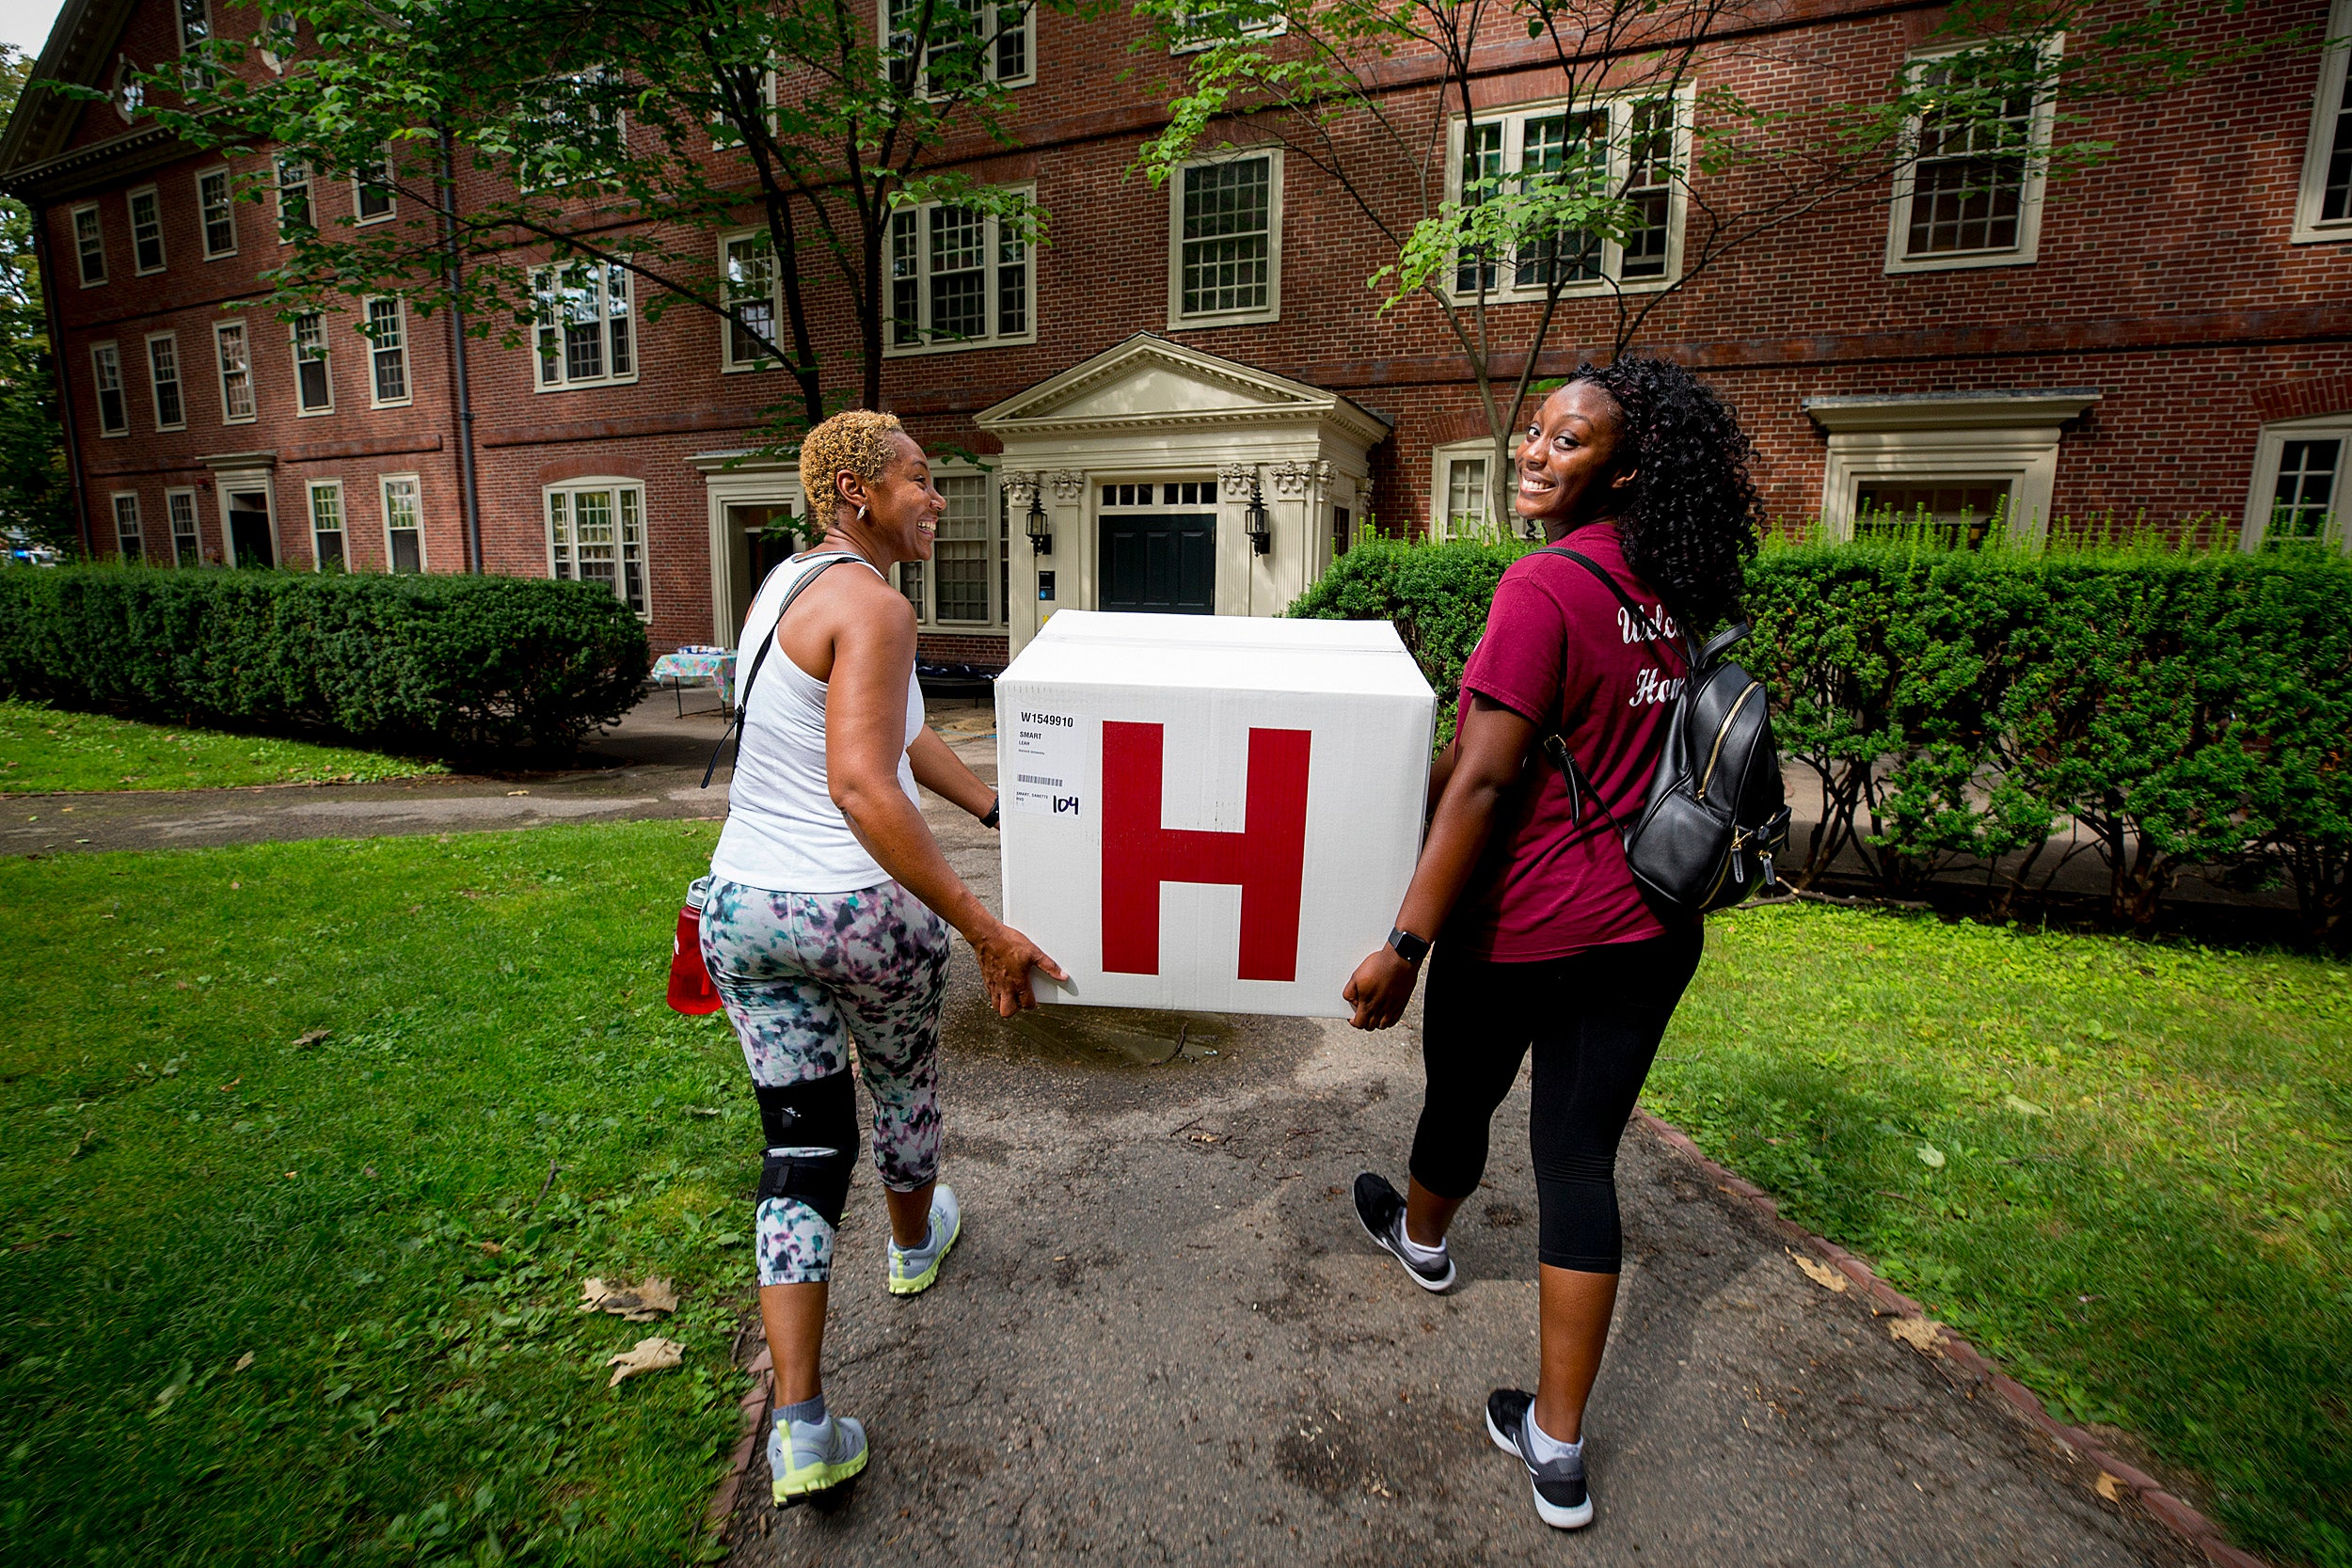 Freshman Leah Smart and her mother, Dee, carry box into Harvard dorm.